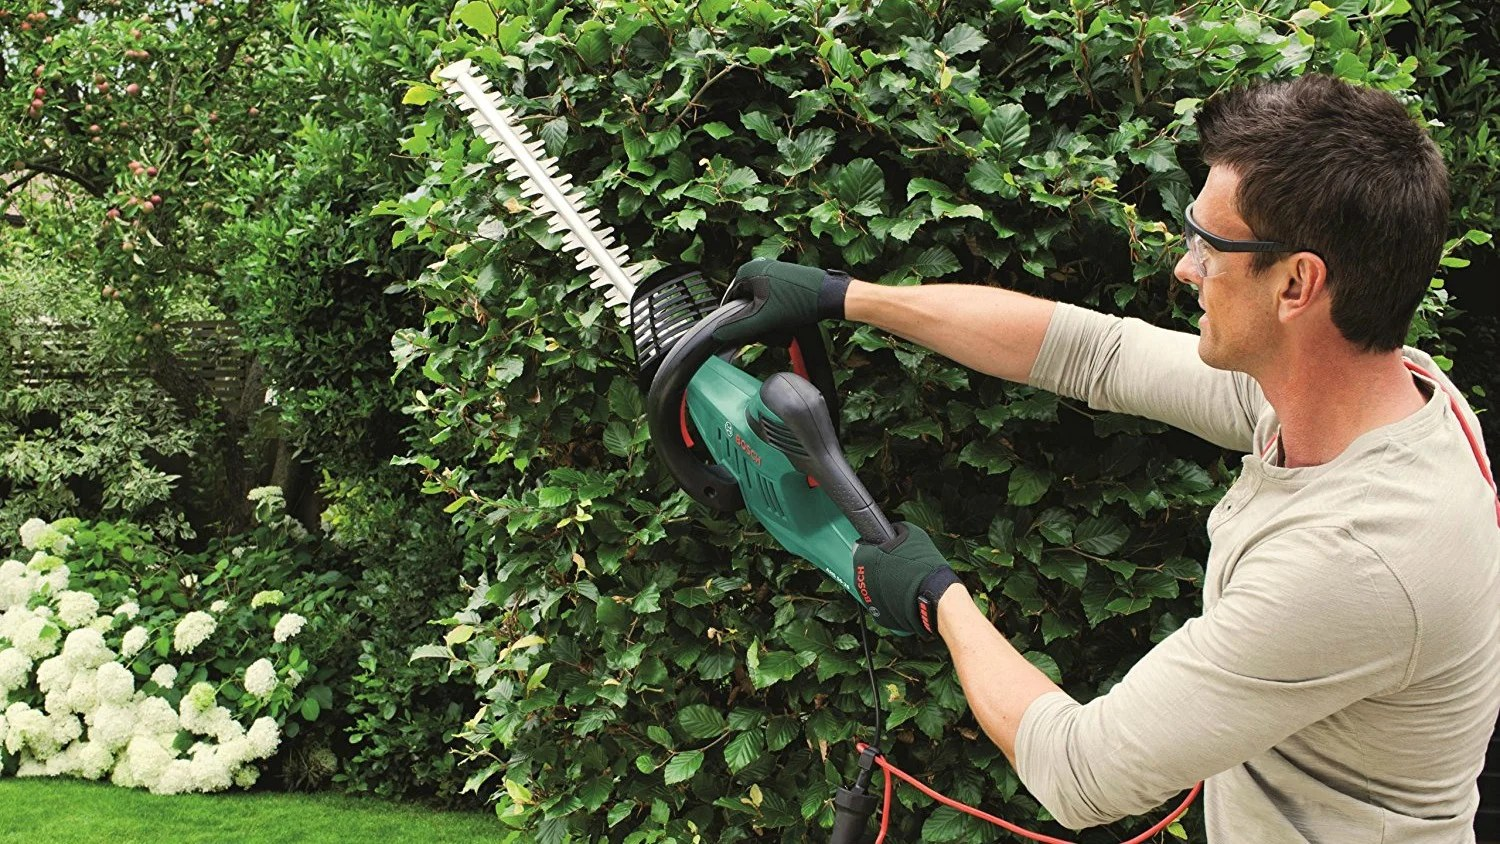 Lorbeerhecke Schneiden Best Hedge Trimmer: The Best Trimmers To Buy From £50